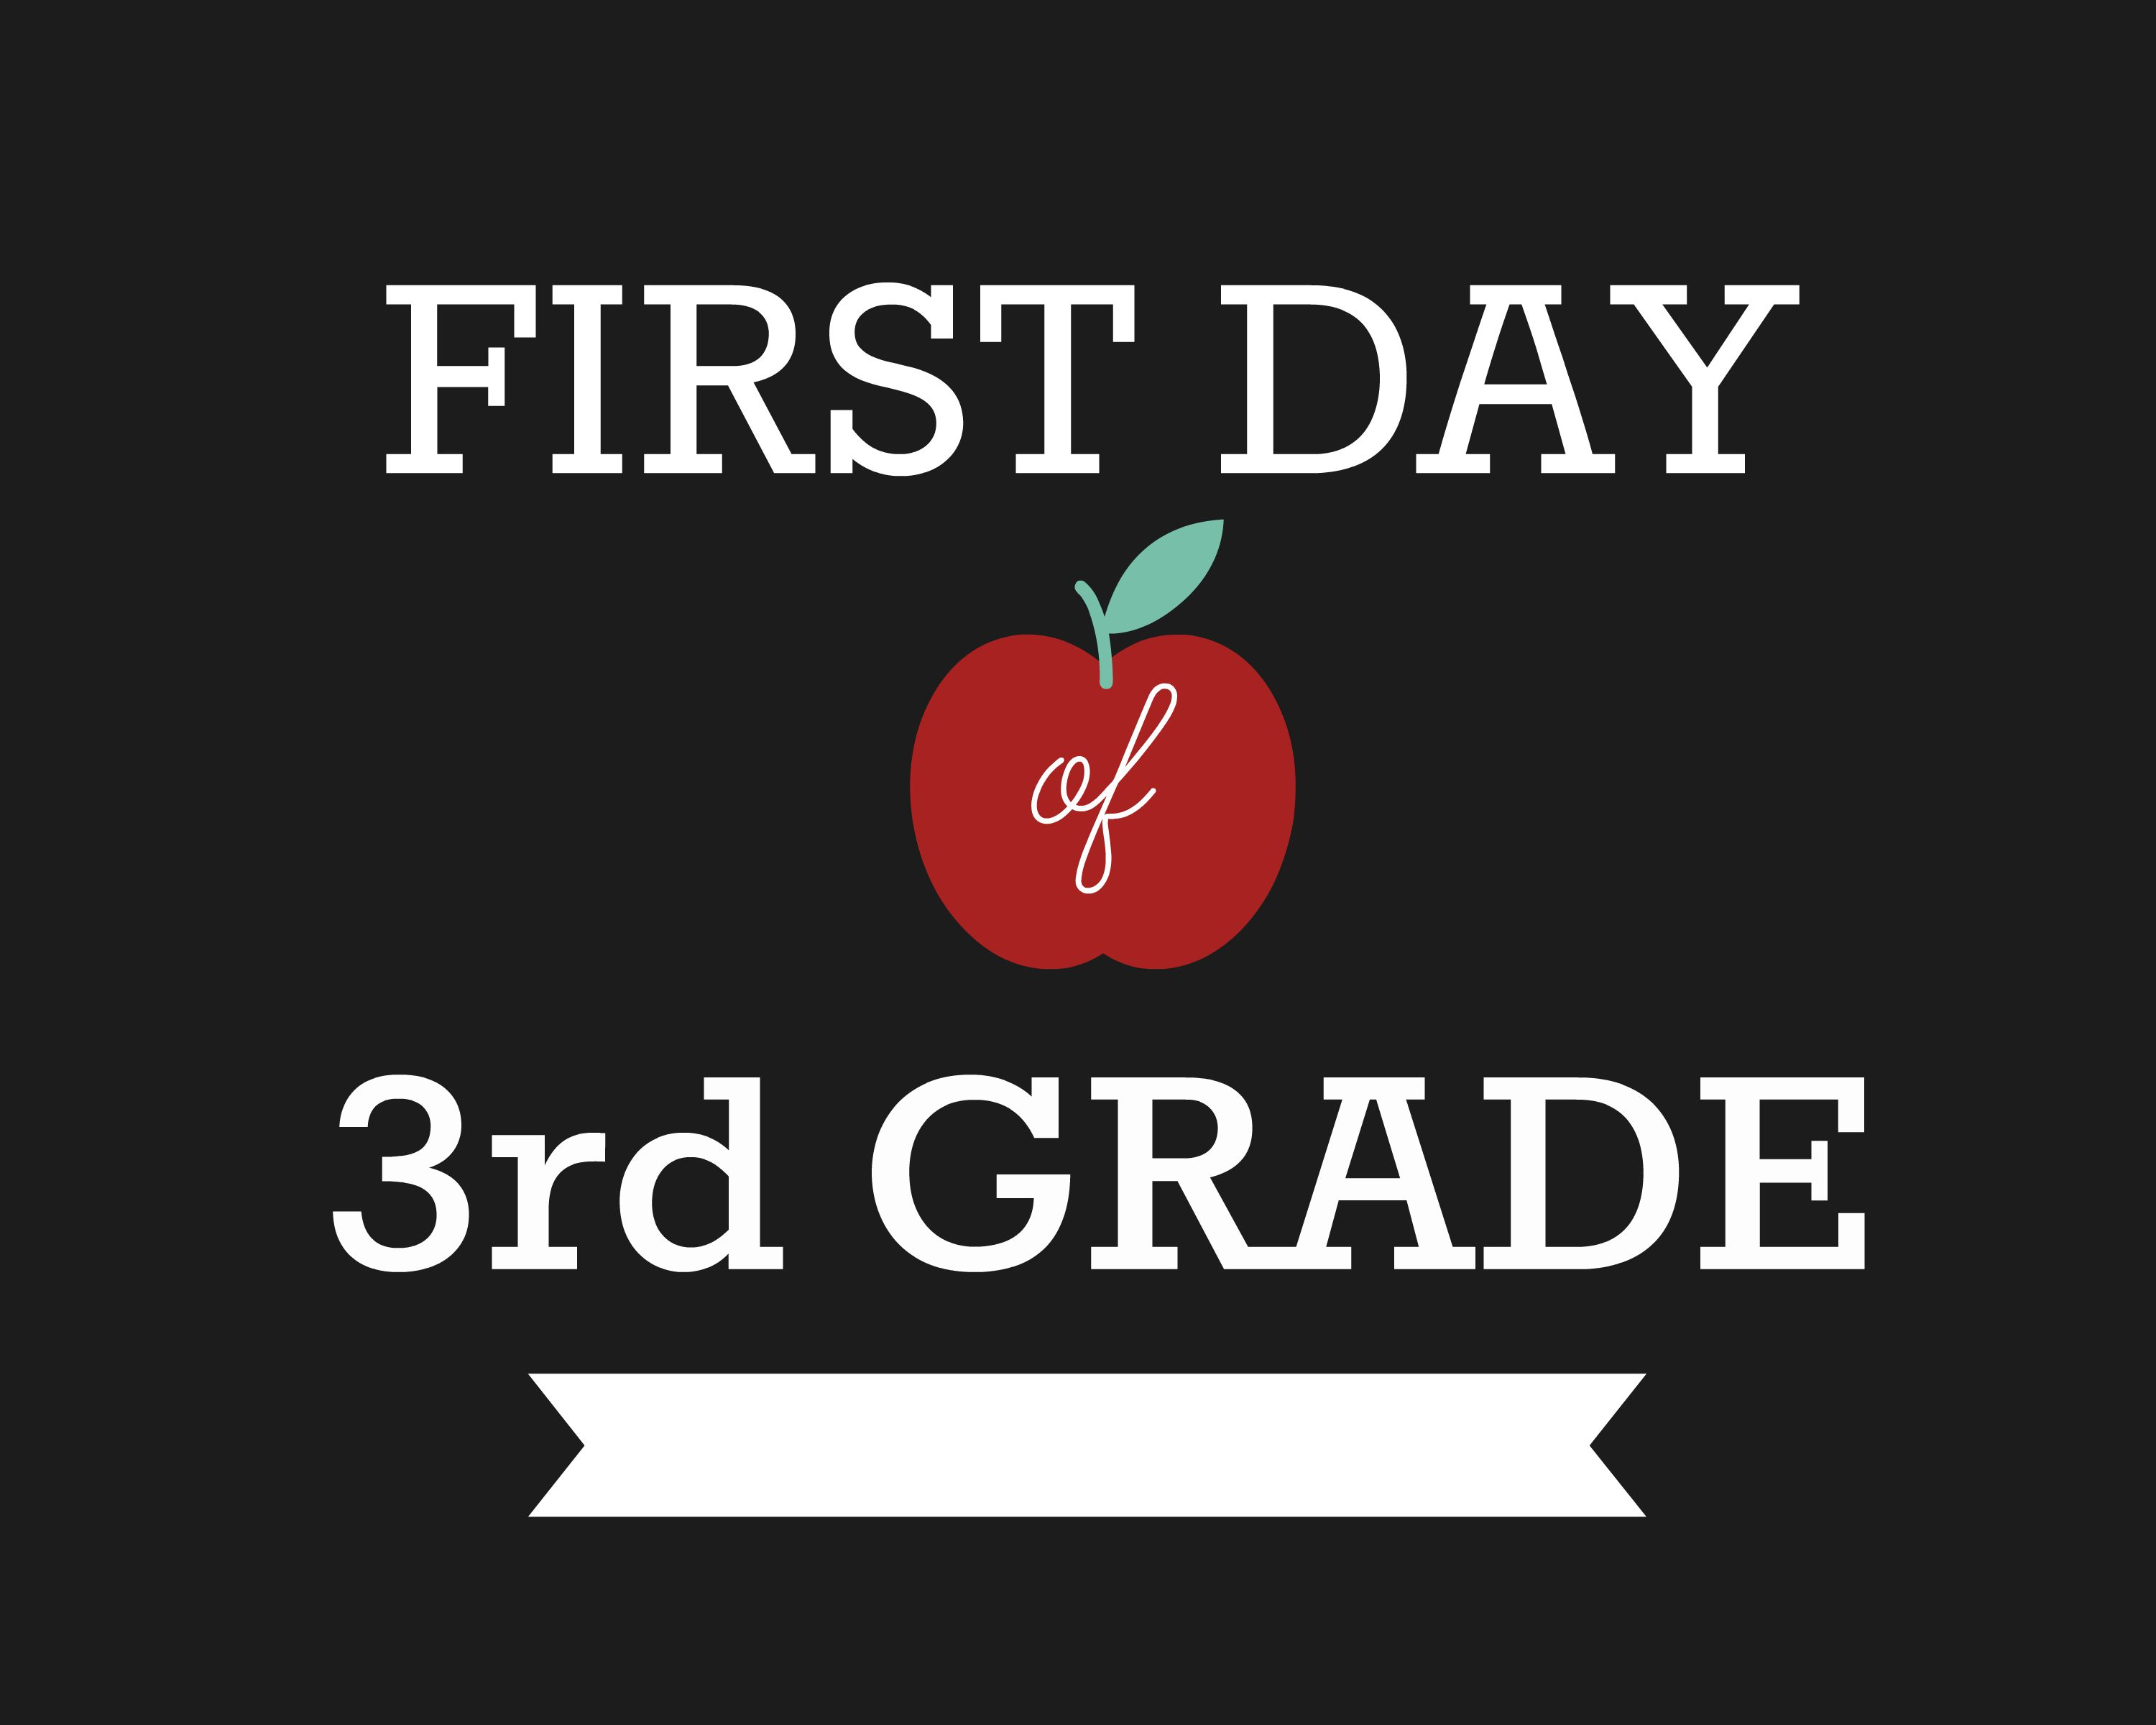 First Day of School Signs, Third Grade 1